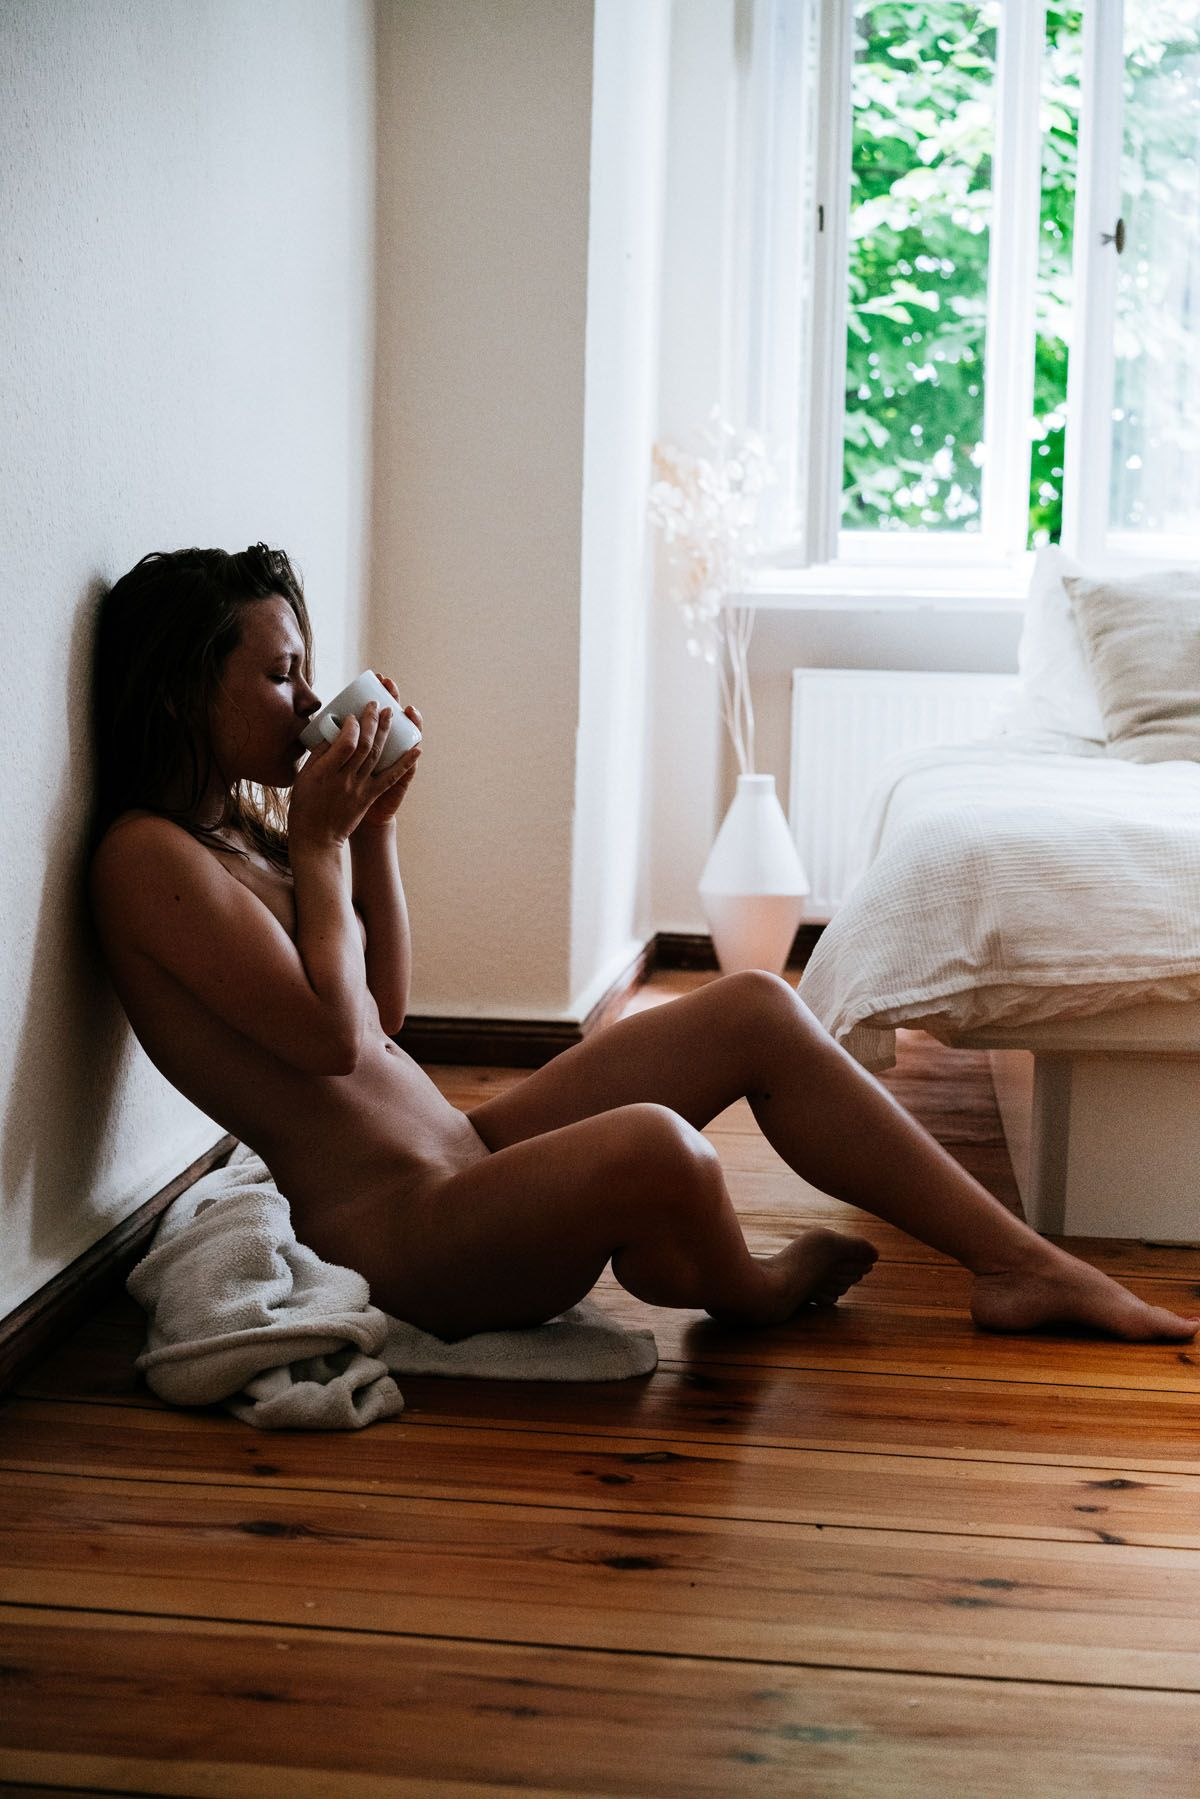 Phrase sorry, naked woman drinking morning coffee